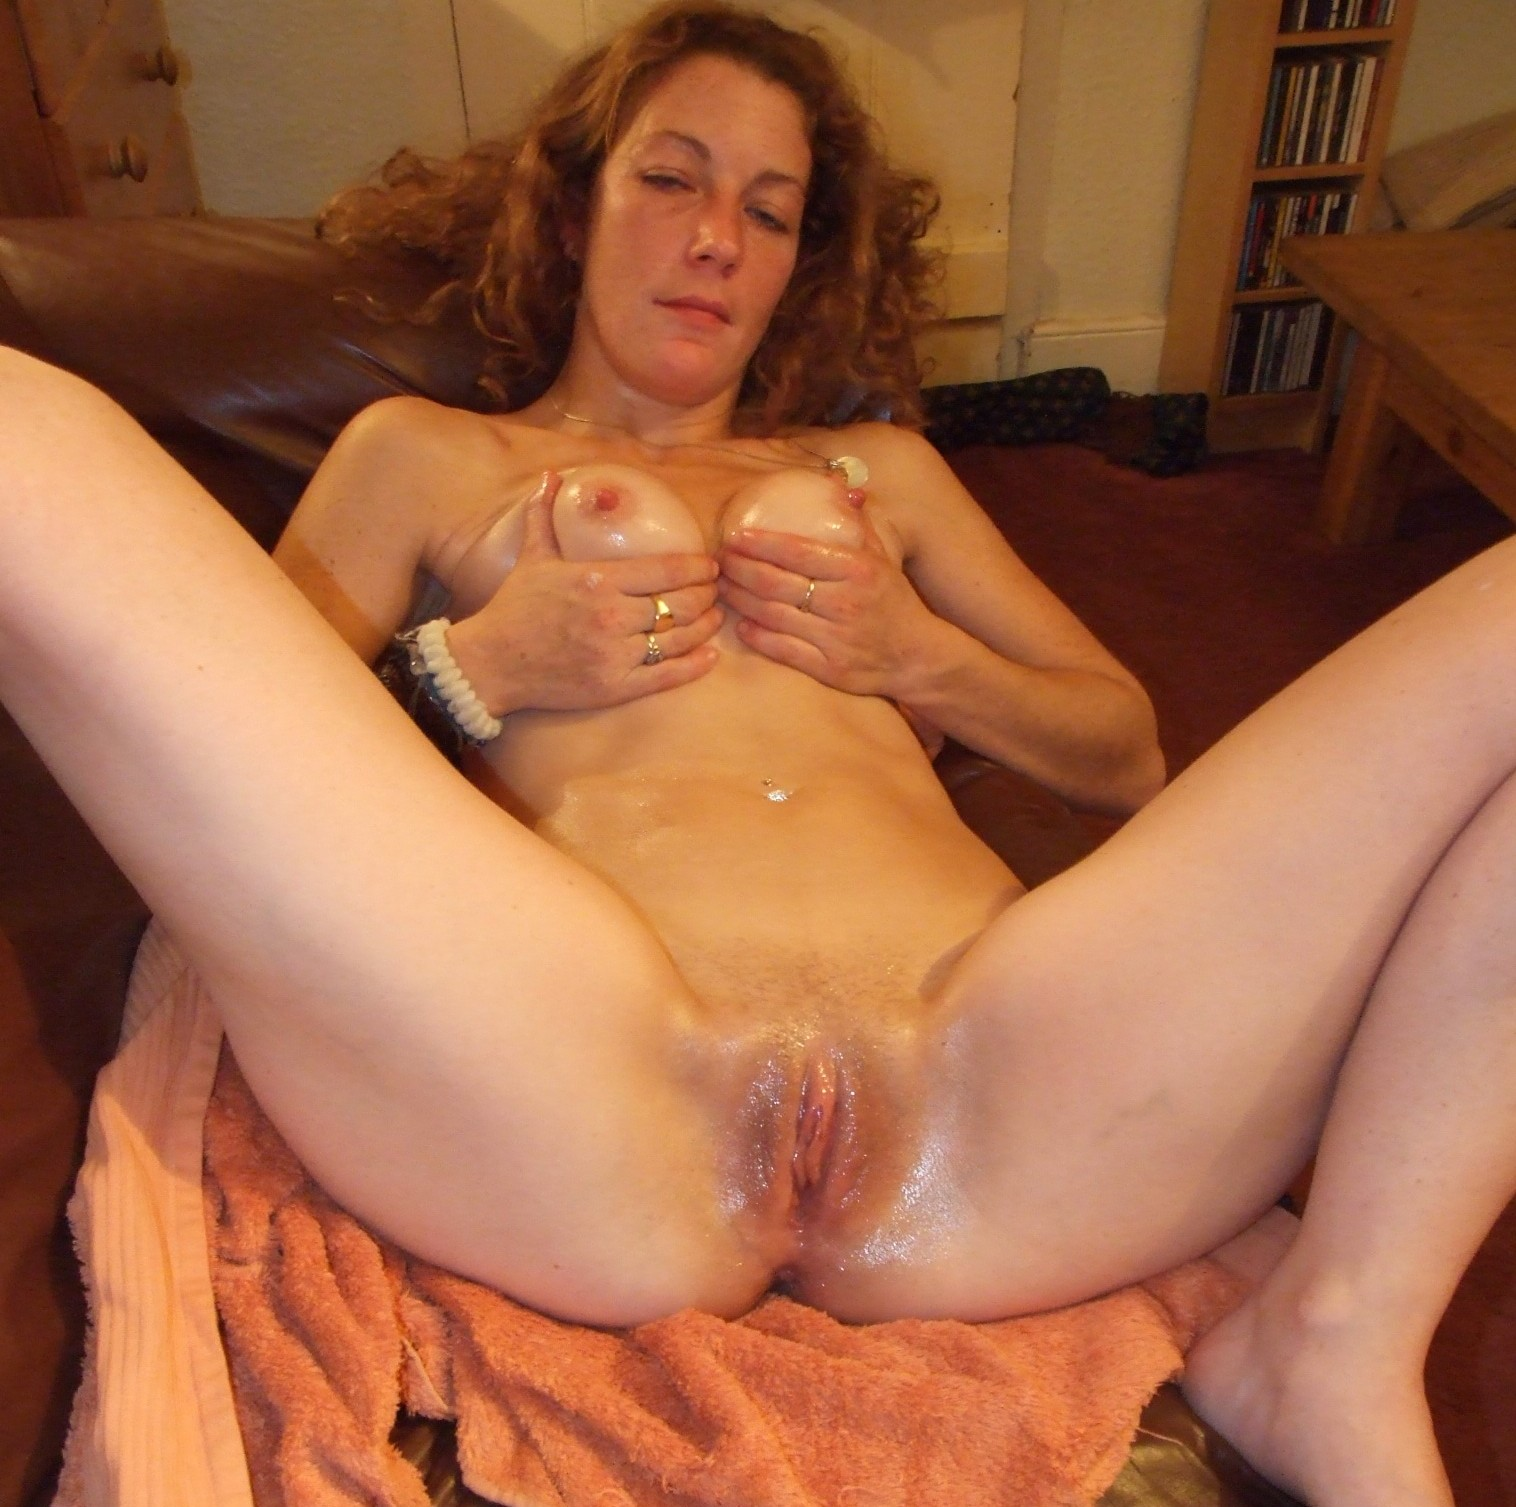 My ex wife creaming on my bbc